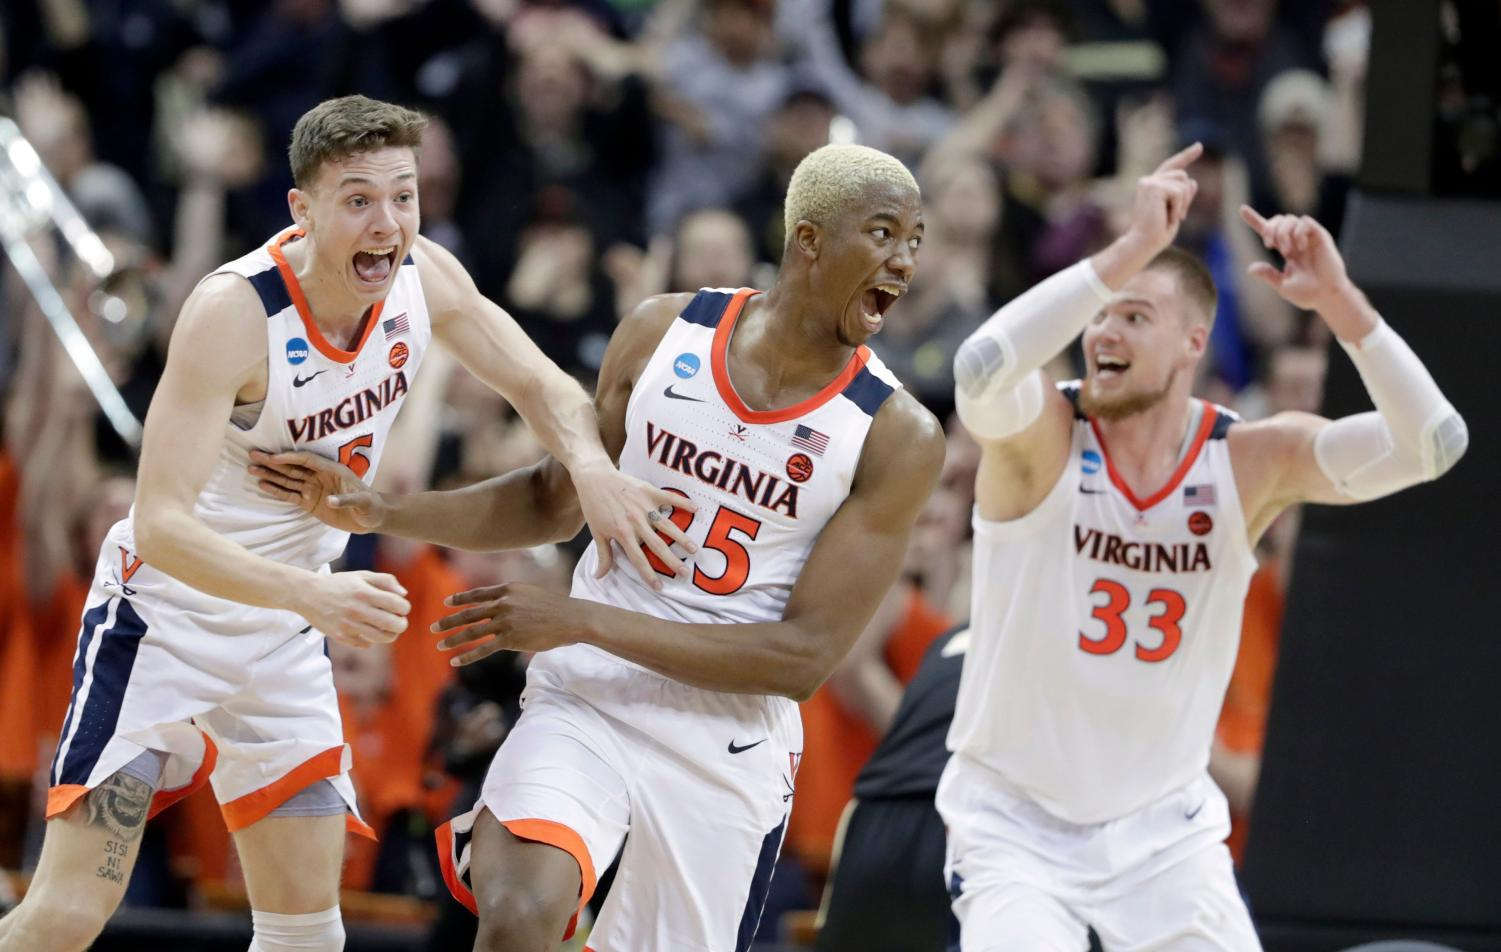 Mamadi Diakite hit the game-winner in the Elite Eight to send Virginia to its first ever Final Four appearance.